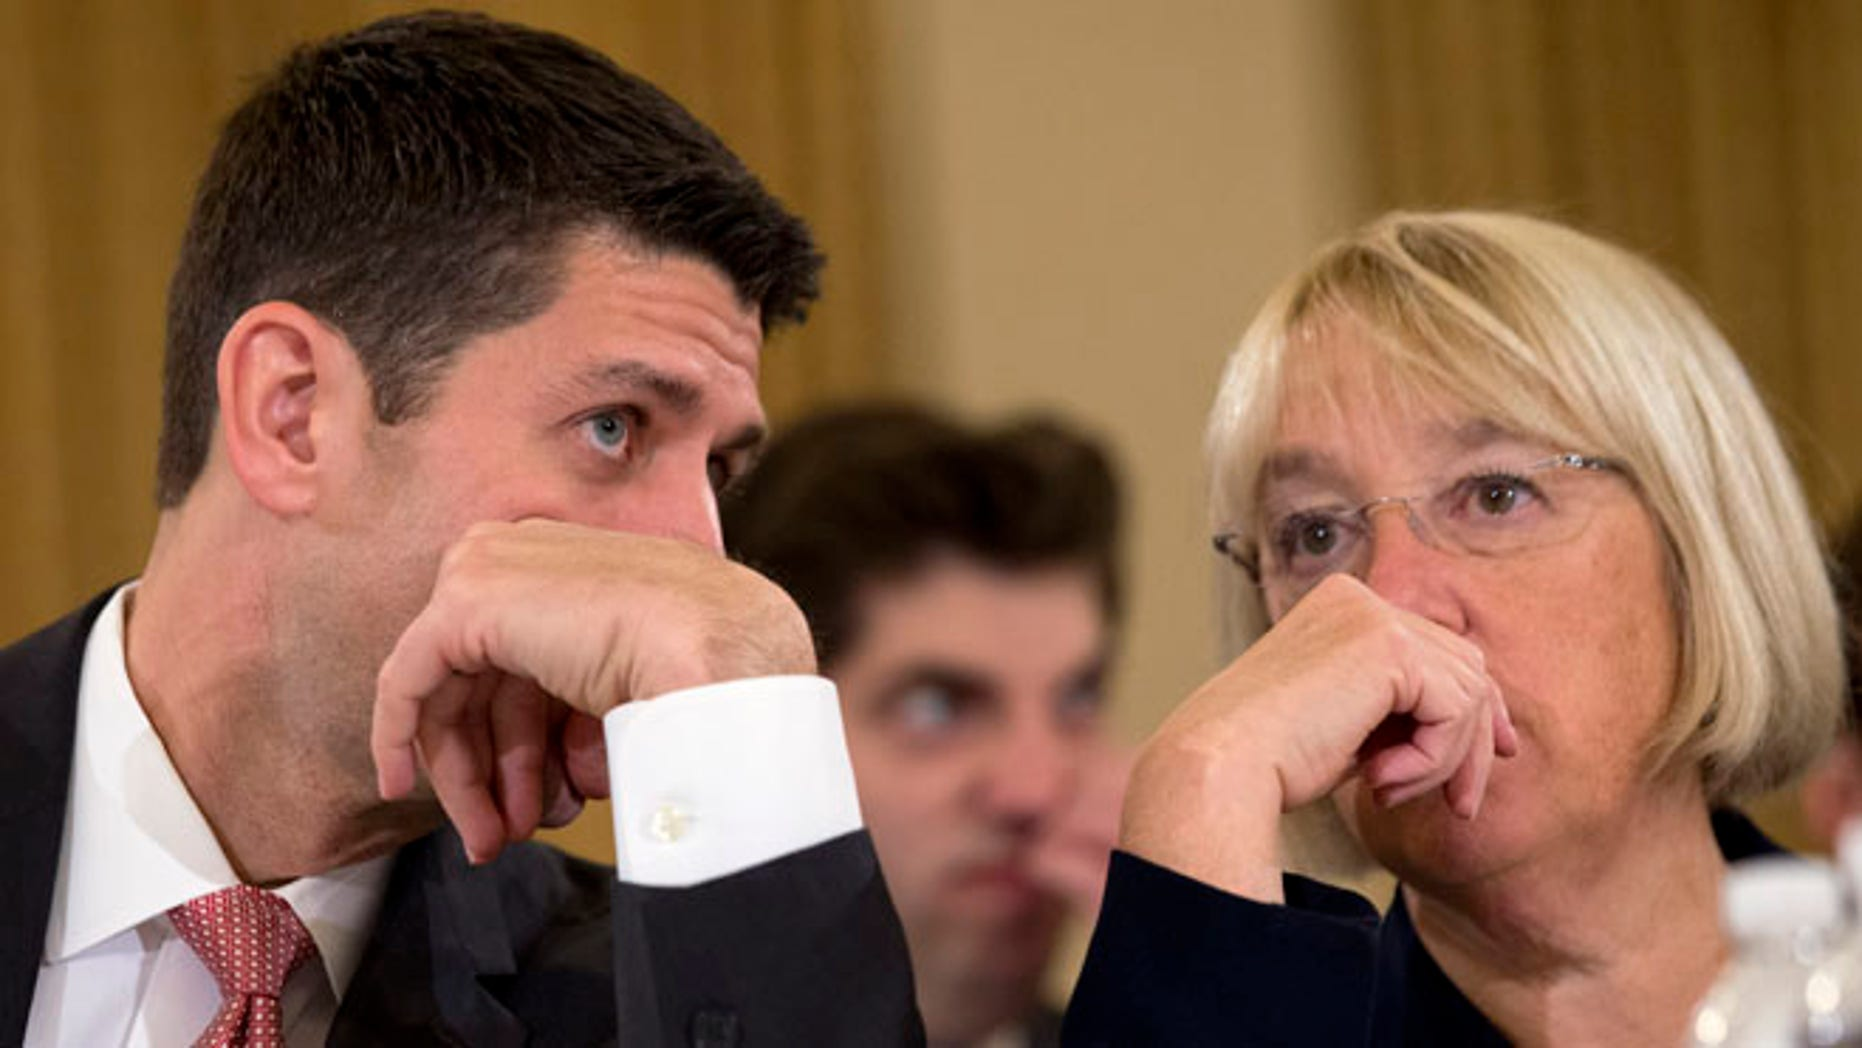 Nov. 13, 2013 file photo of House Budget Committee Chairman Rep. Paul Ryan, R-Wis., left, speaking with Senate Budget Committee Chair Sen. Patty Murray, D-Wash. on Capitol Hill in Washington.